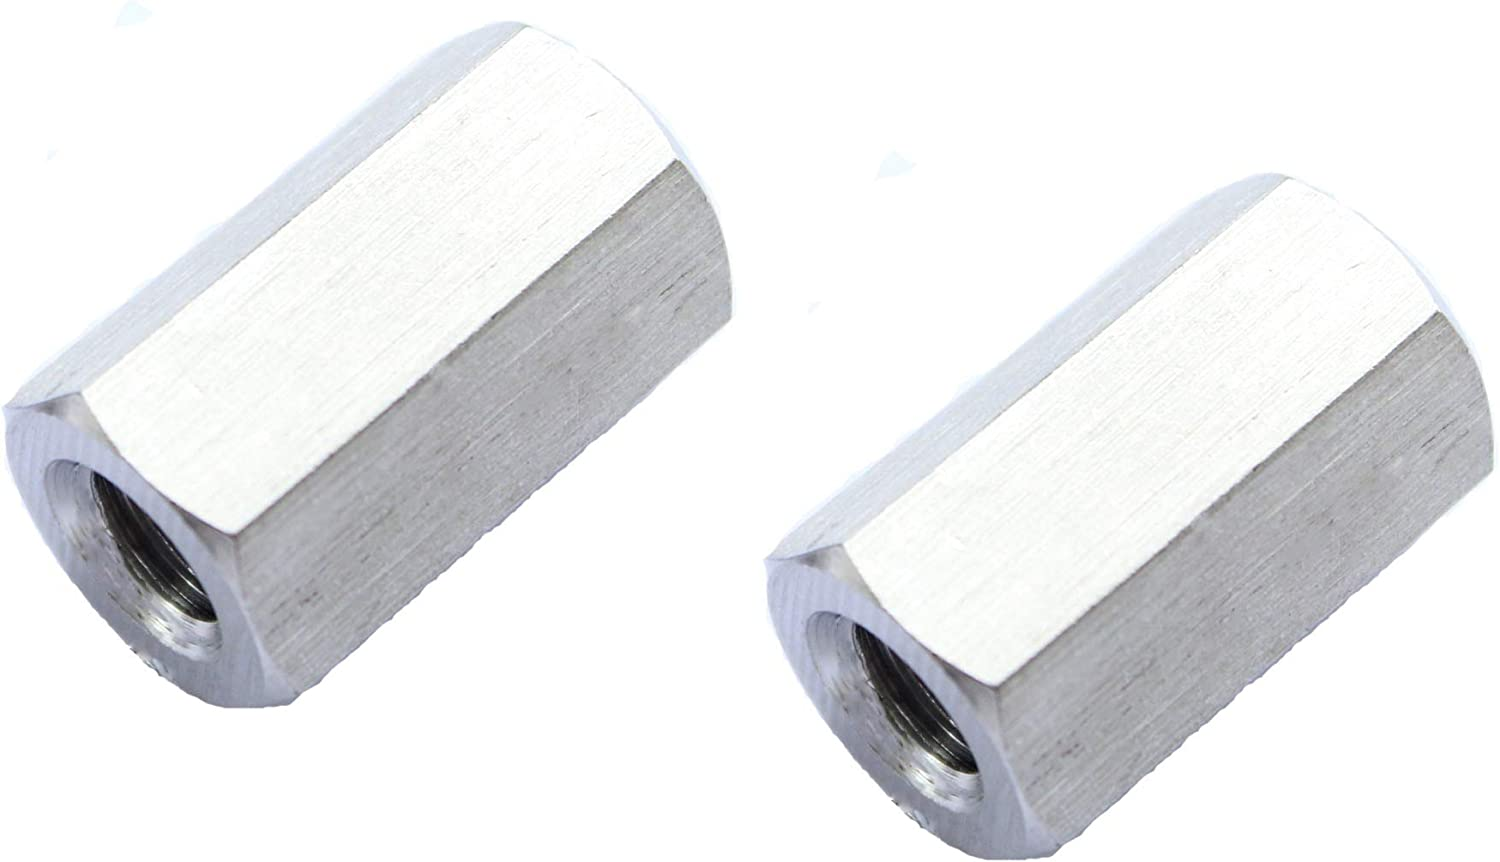 2Pcs uxcell M10 X 1.5-Pitch 30mm Length 304 Stainless Steel Metric Hex Coupling Nut